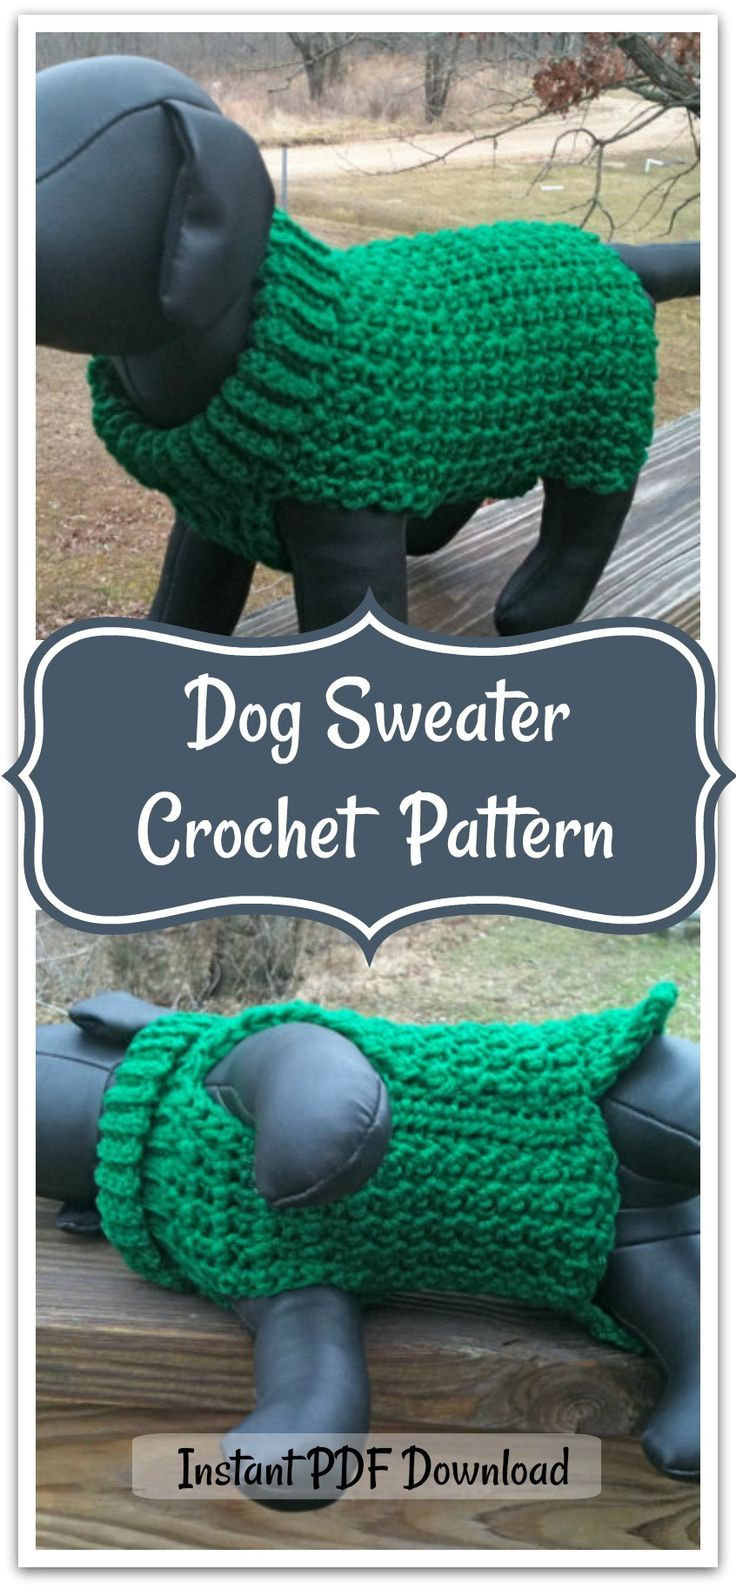 It's an easy little sweater with pictures and directions that you can use for any size dog. It's written for a tiny dog like a Yorkie or a small Chihuahua, but it has gauge and measurements so you can make one for a bigger dog if you choose. Instant PDF download #ad #affiliate #crochet #pattern #dog